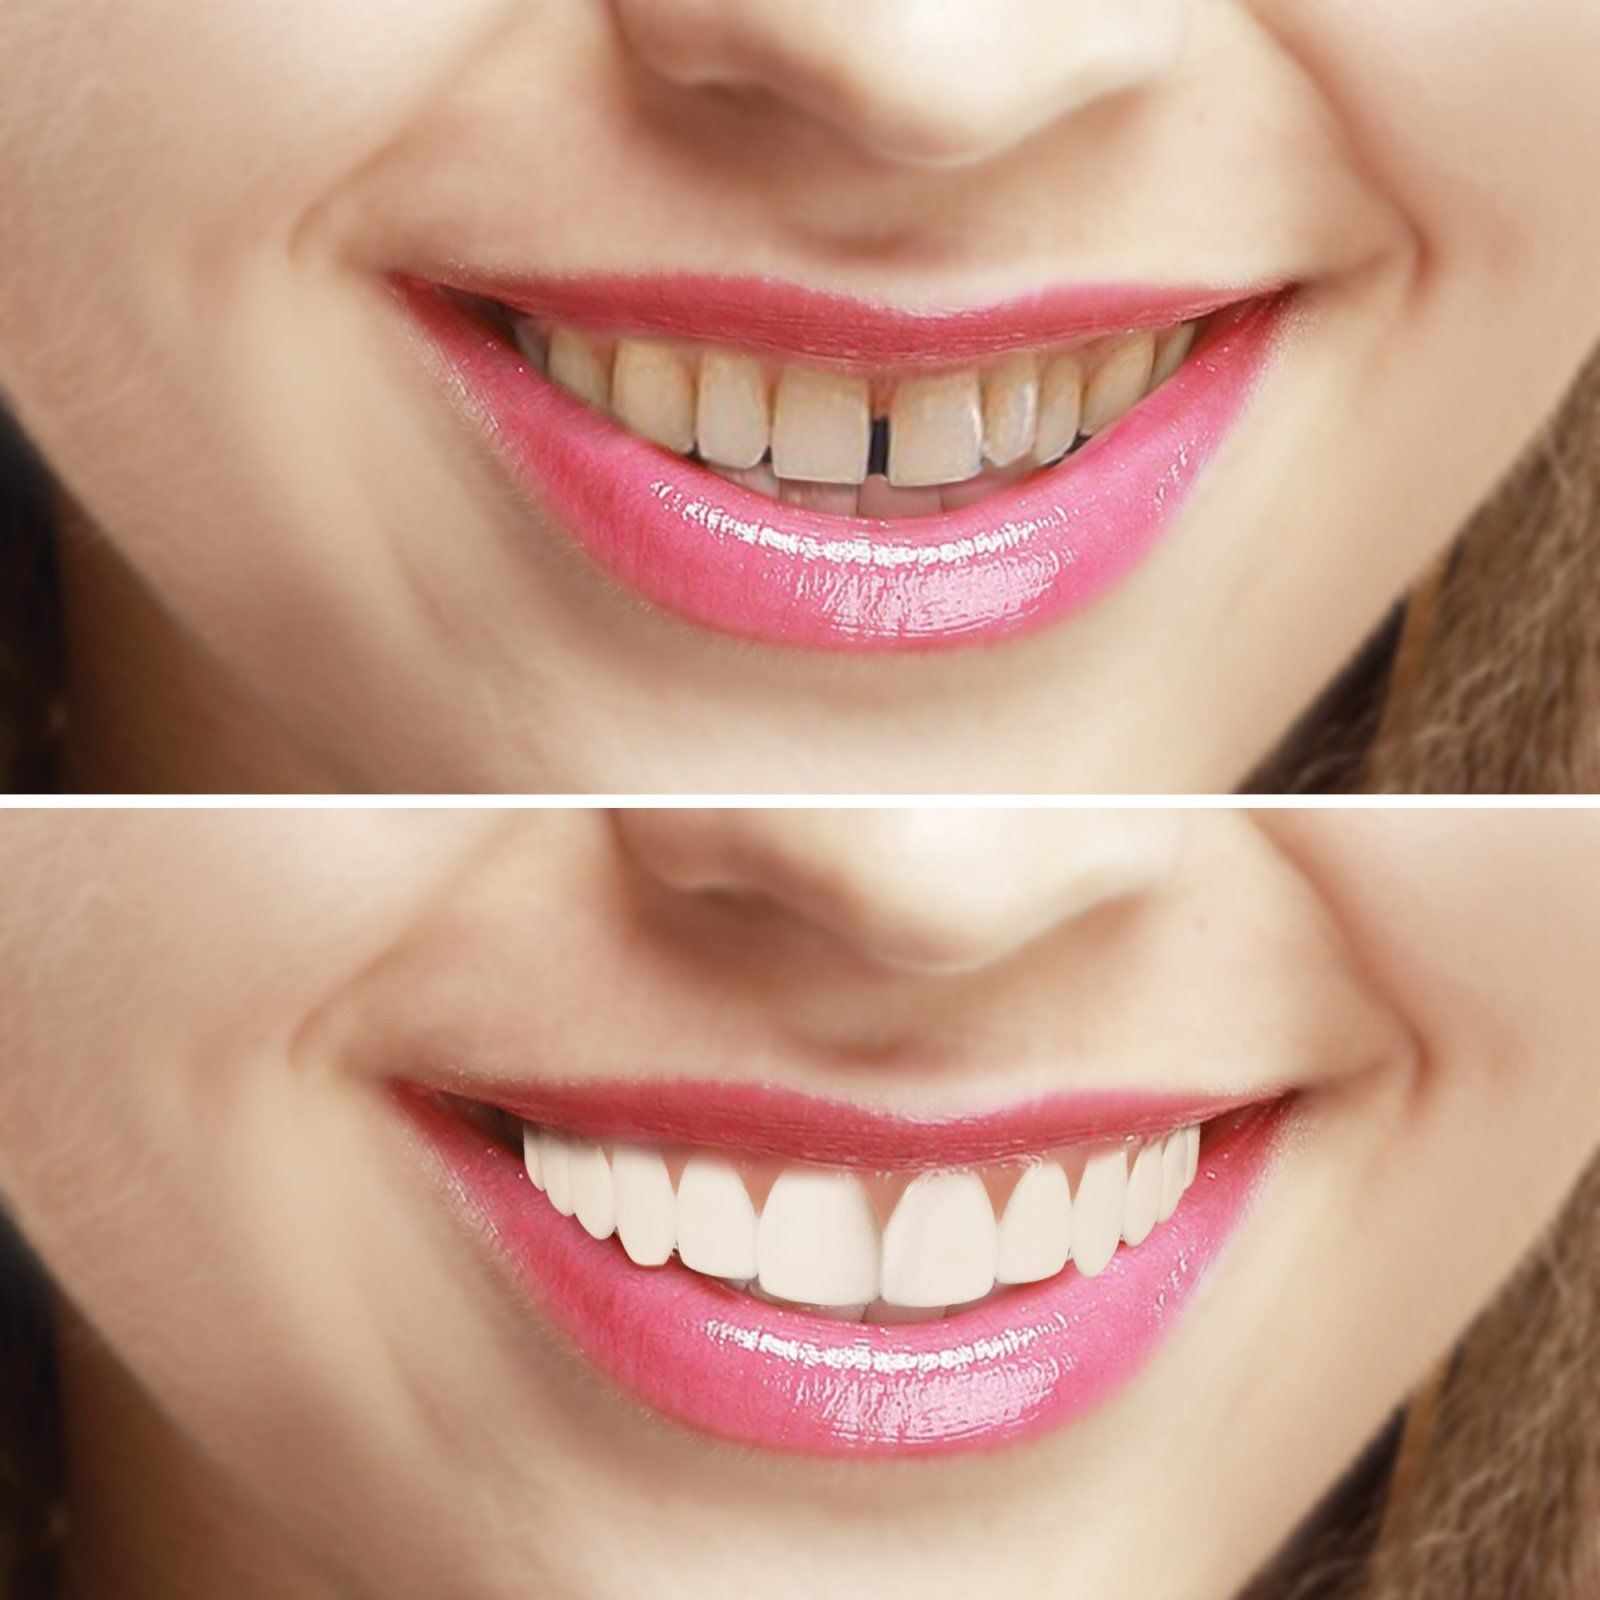 Преимущества Perfect Smile Veneers